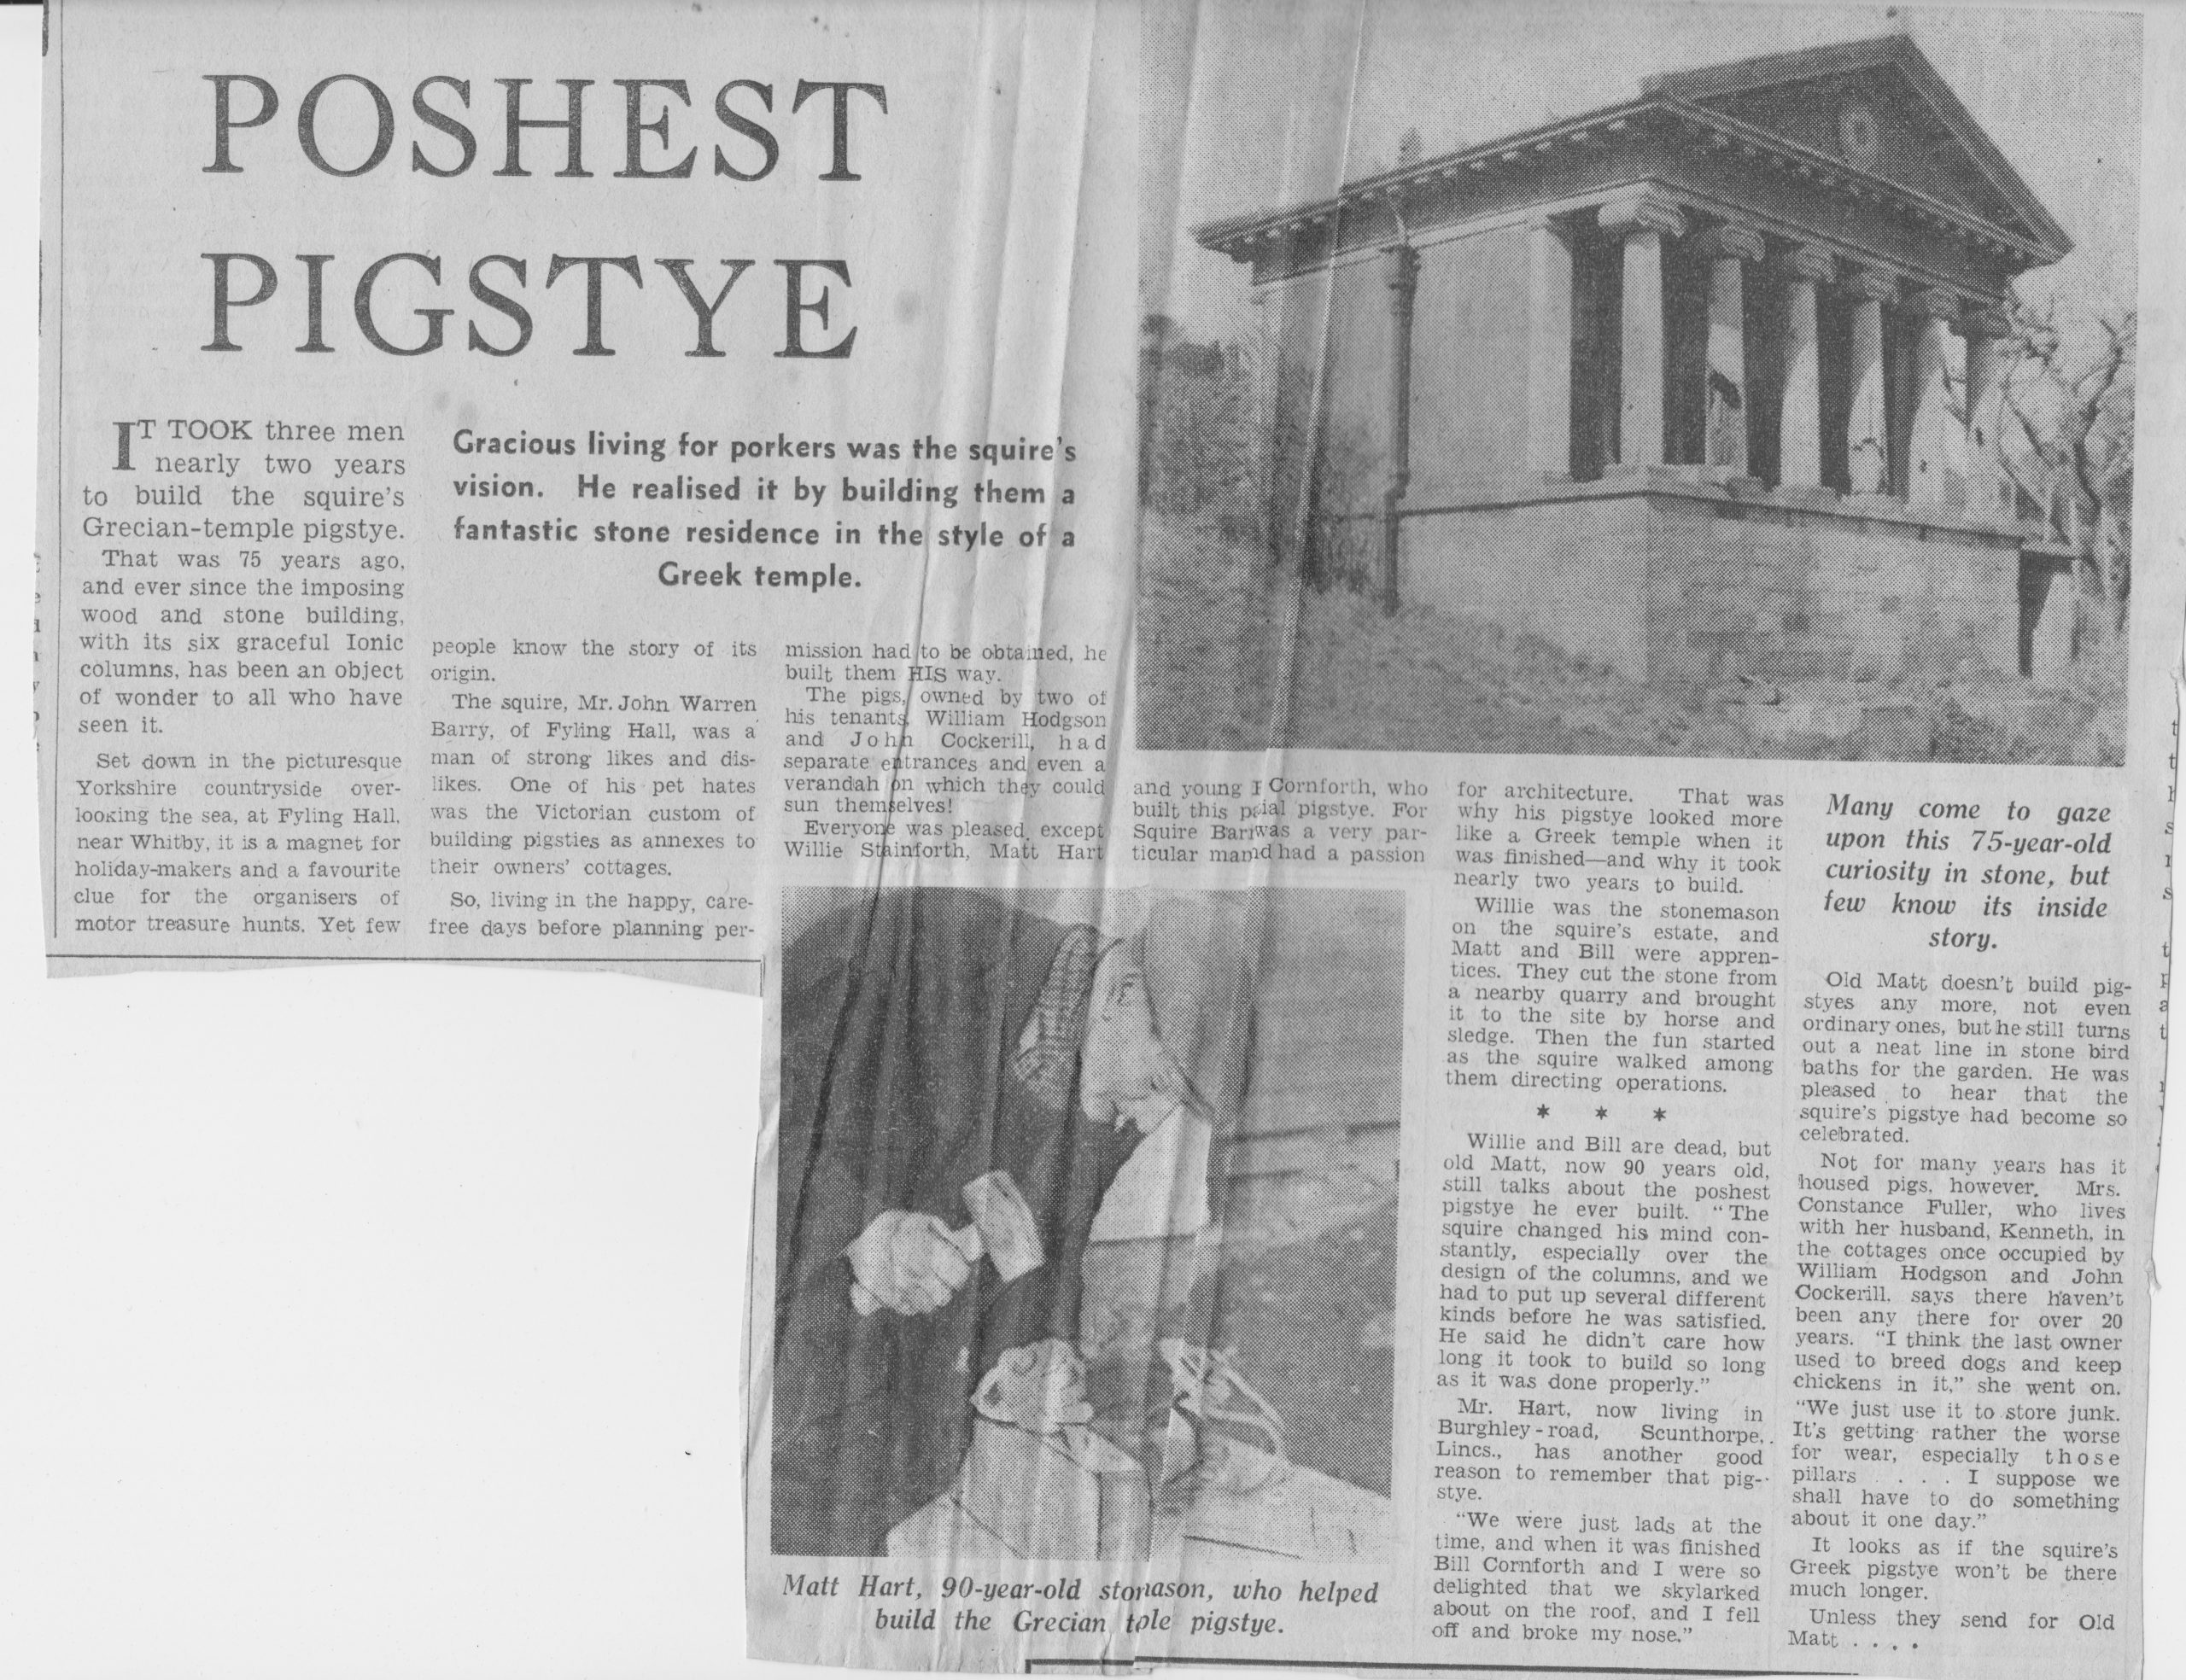 Tom takes a look at the Victorian built Grecian style pig style at Fyling Hall